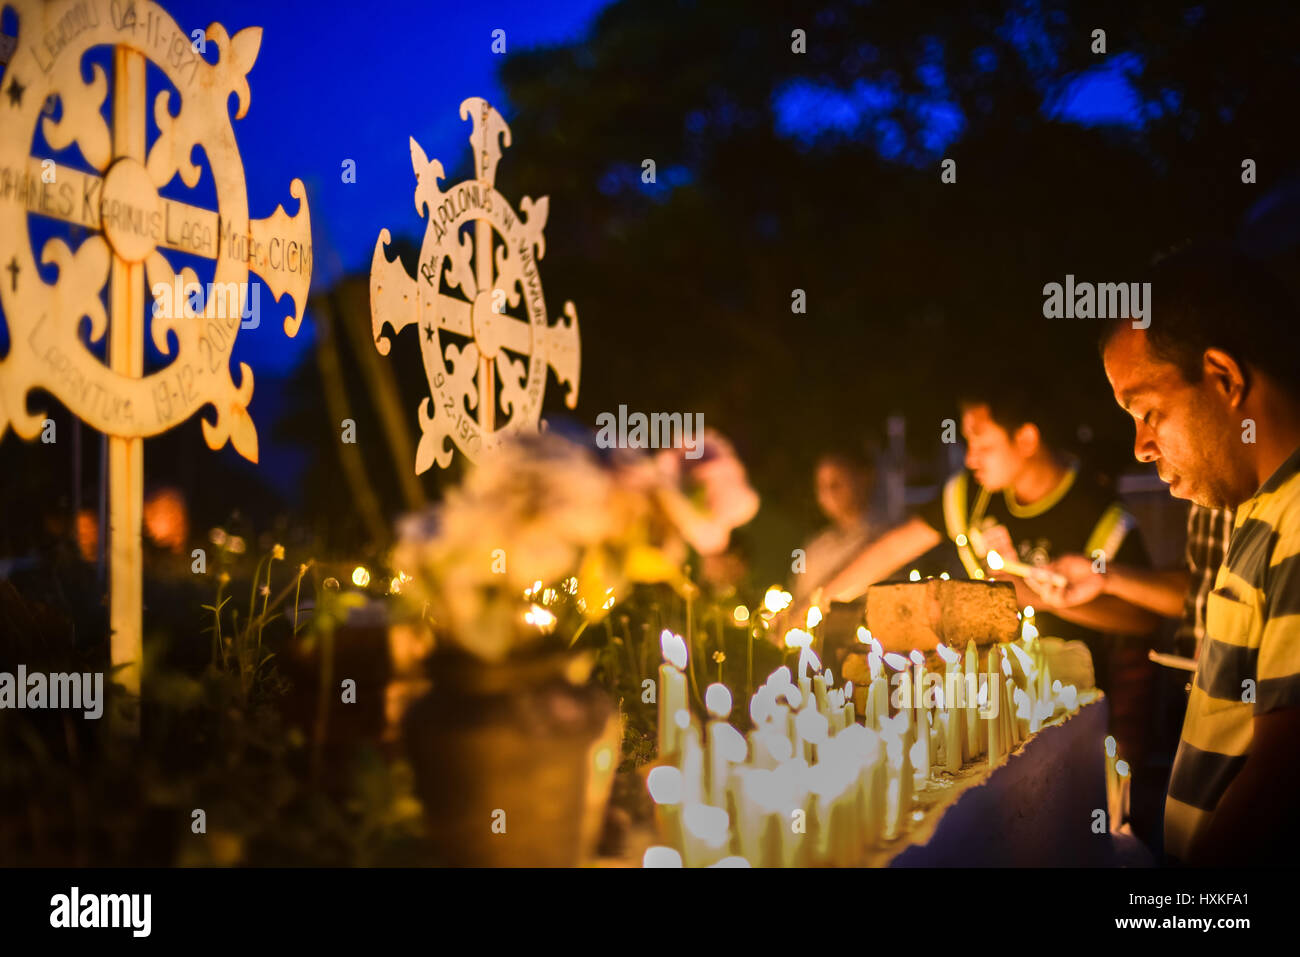 Pilgrims praying at the Cathedral Cemetery as a part of Semana Santa (Holy Week celebration) in Larantuka, Indonesia. - Stock Image